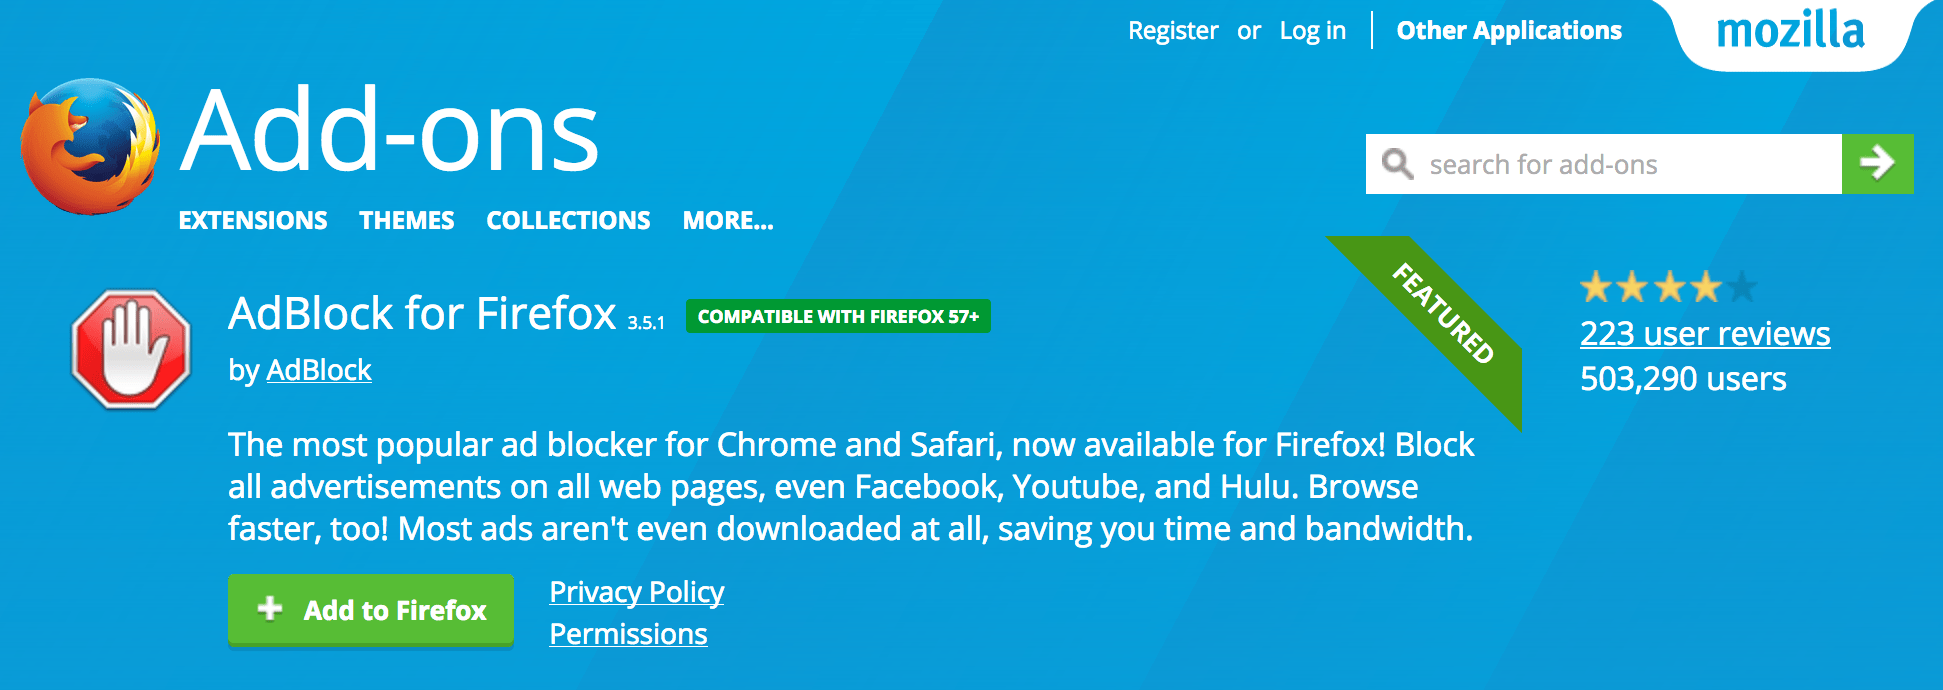 Need a Replacement Firefox Addon: Check Out Our Guide Here